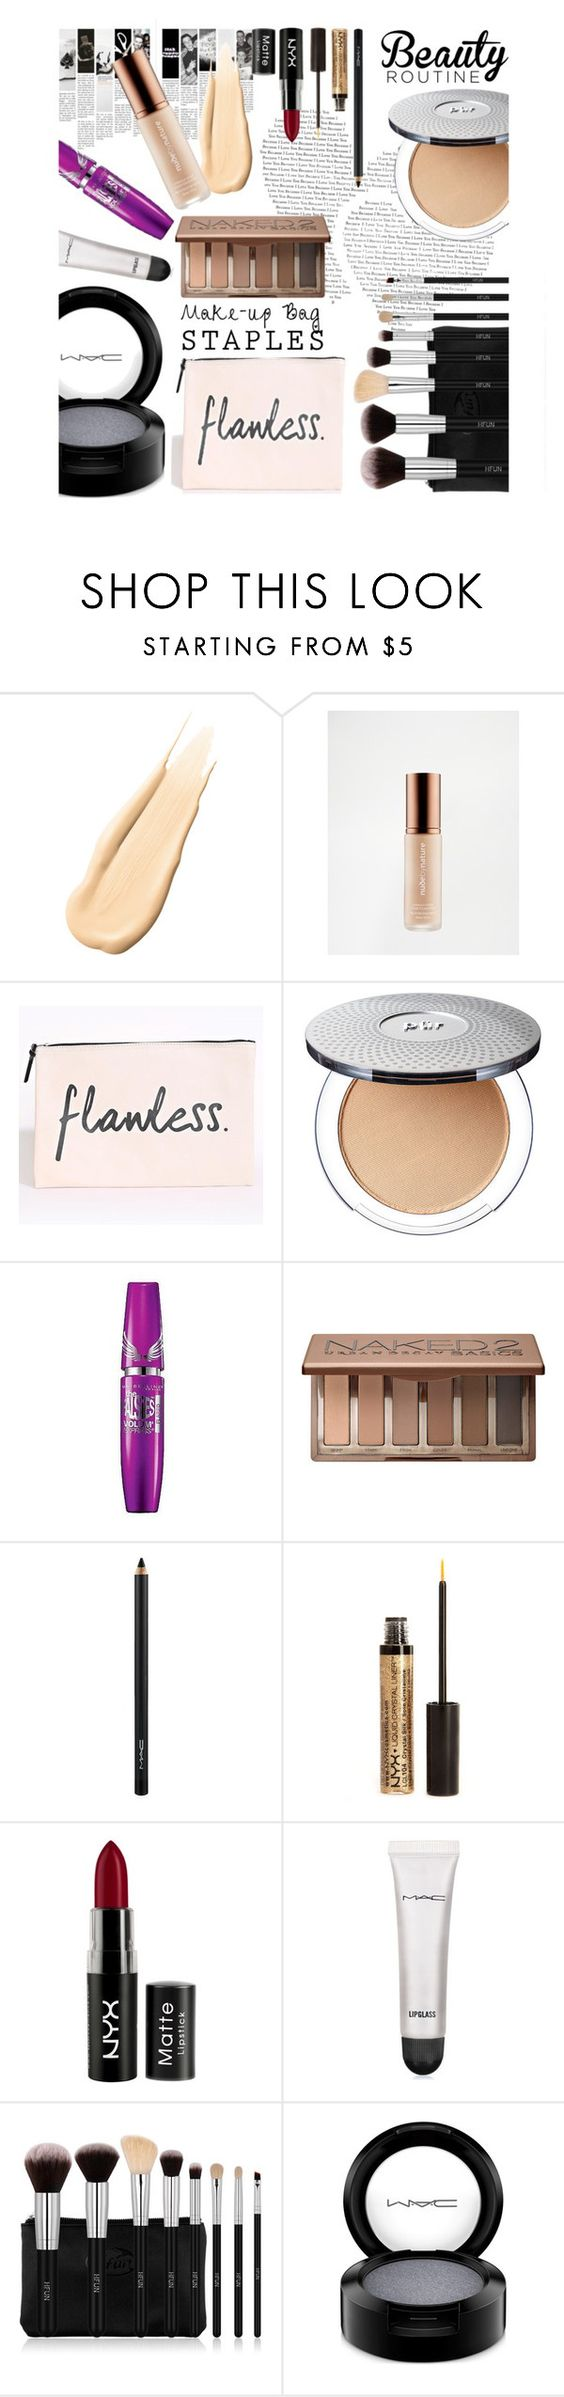 """""""My makeup bag"""" by missdee-93 ❤ liked on Polyvore featuring Hourglass Cosmetics, Nude by Nature, Maybelline, Urban Decay, MAC Cosmetics and NYX"""